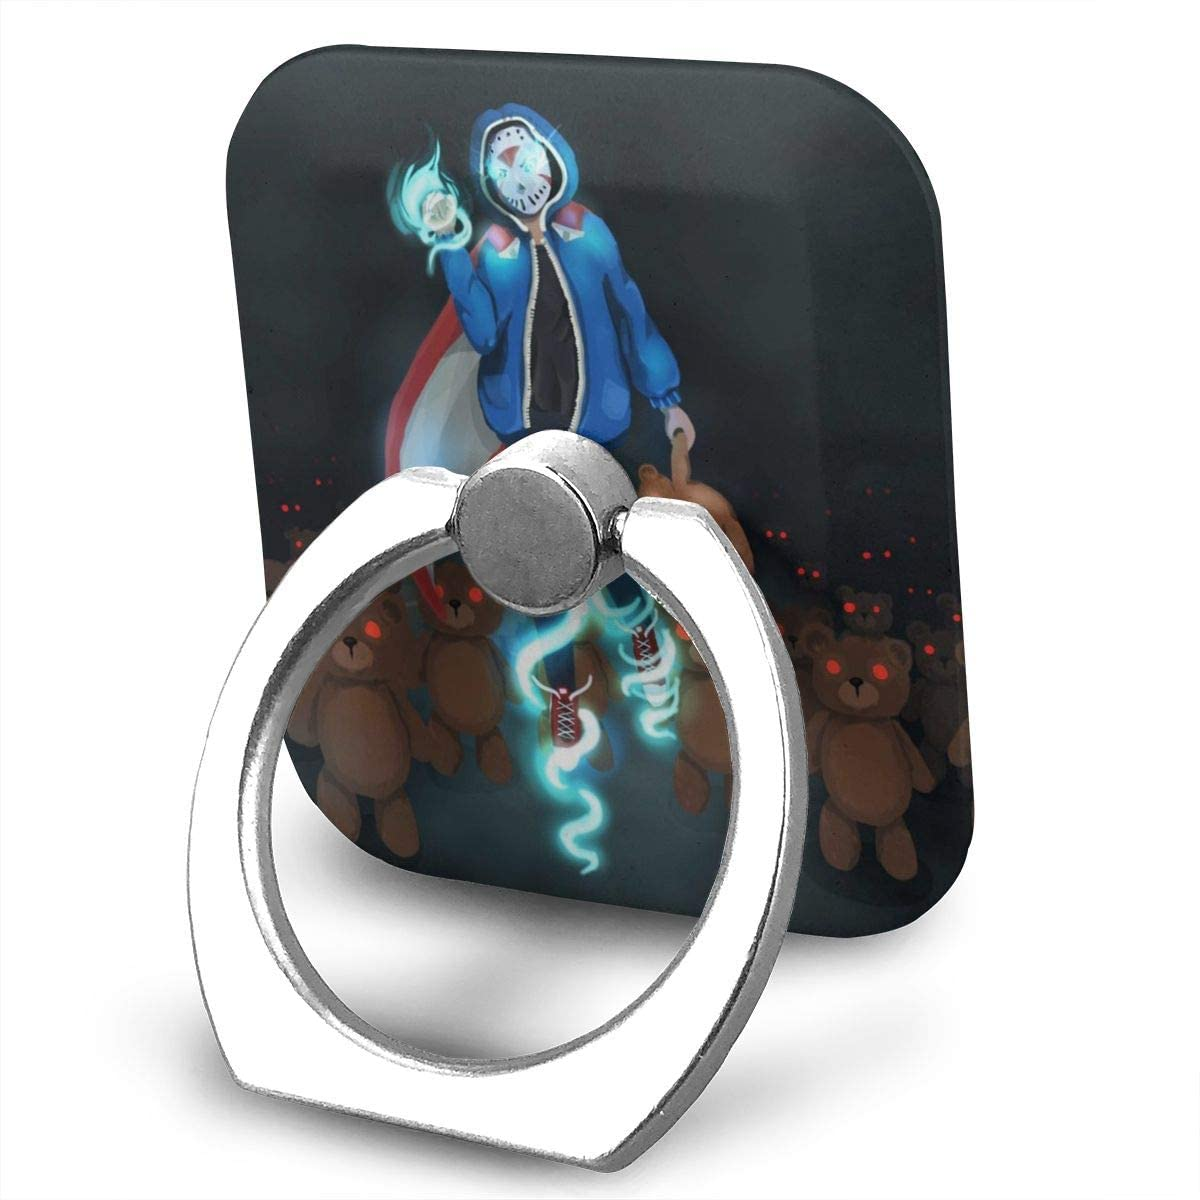 H2o Delirious Phone Finger Ring Stand Bracket Holder Smartphone Grip Stand Holder 360 Degree Rotating Sticky Cute